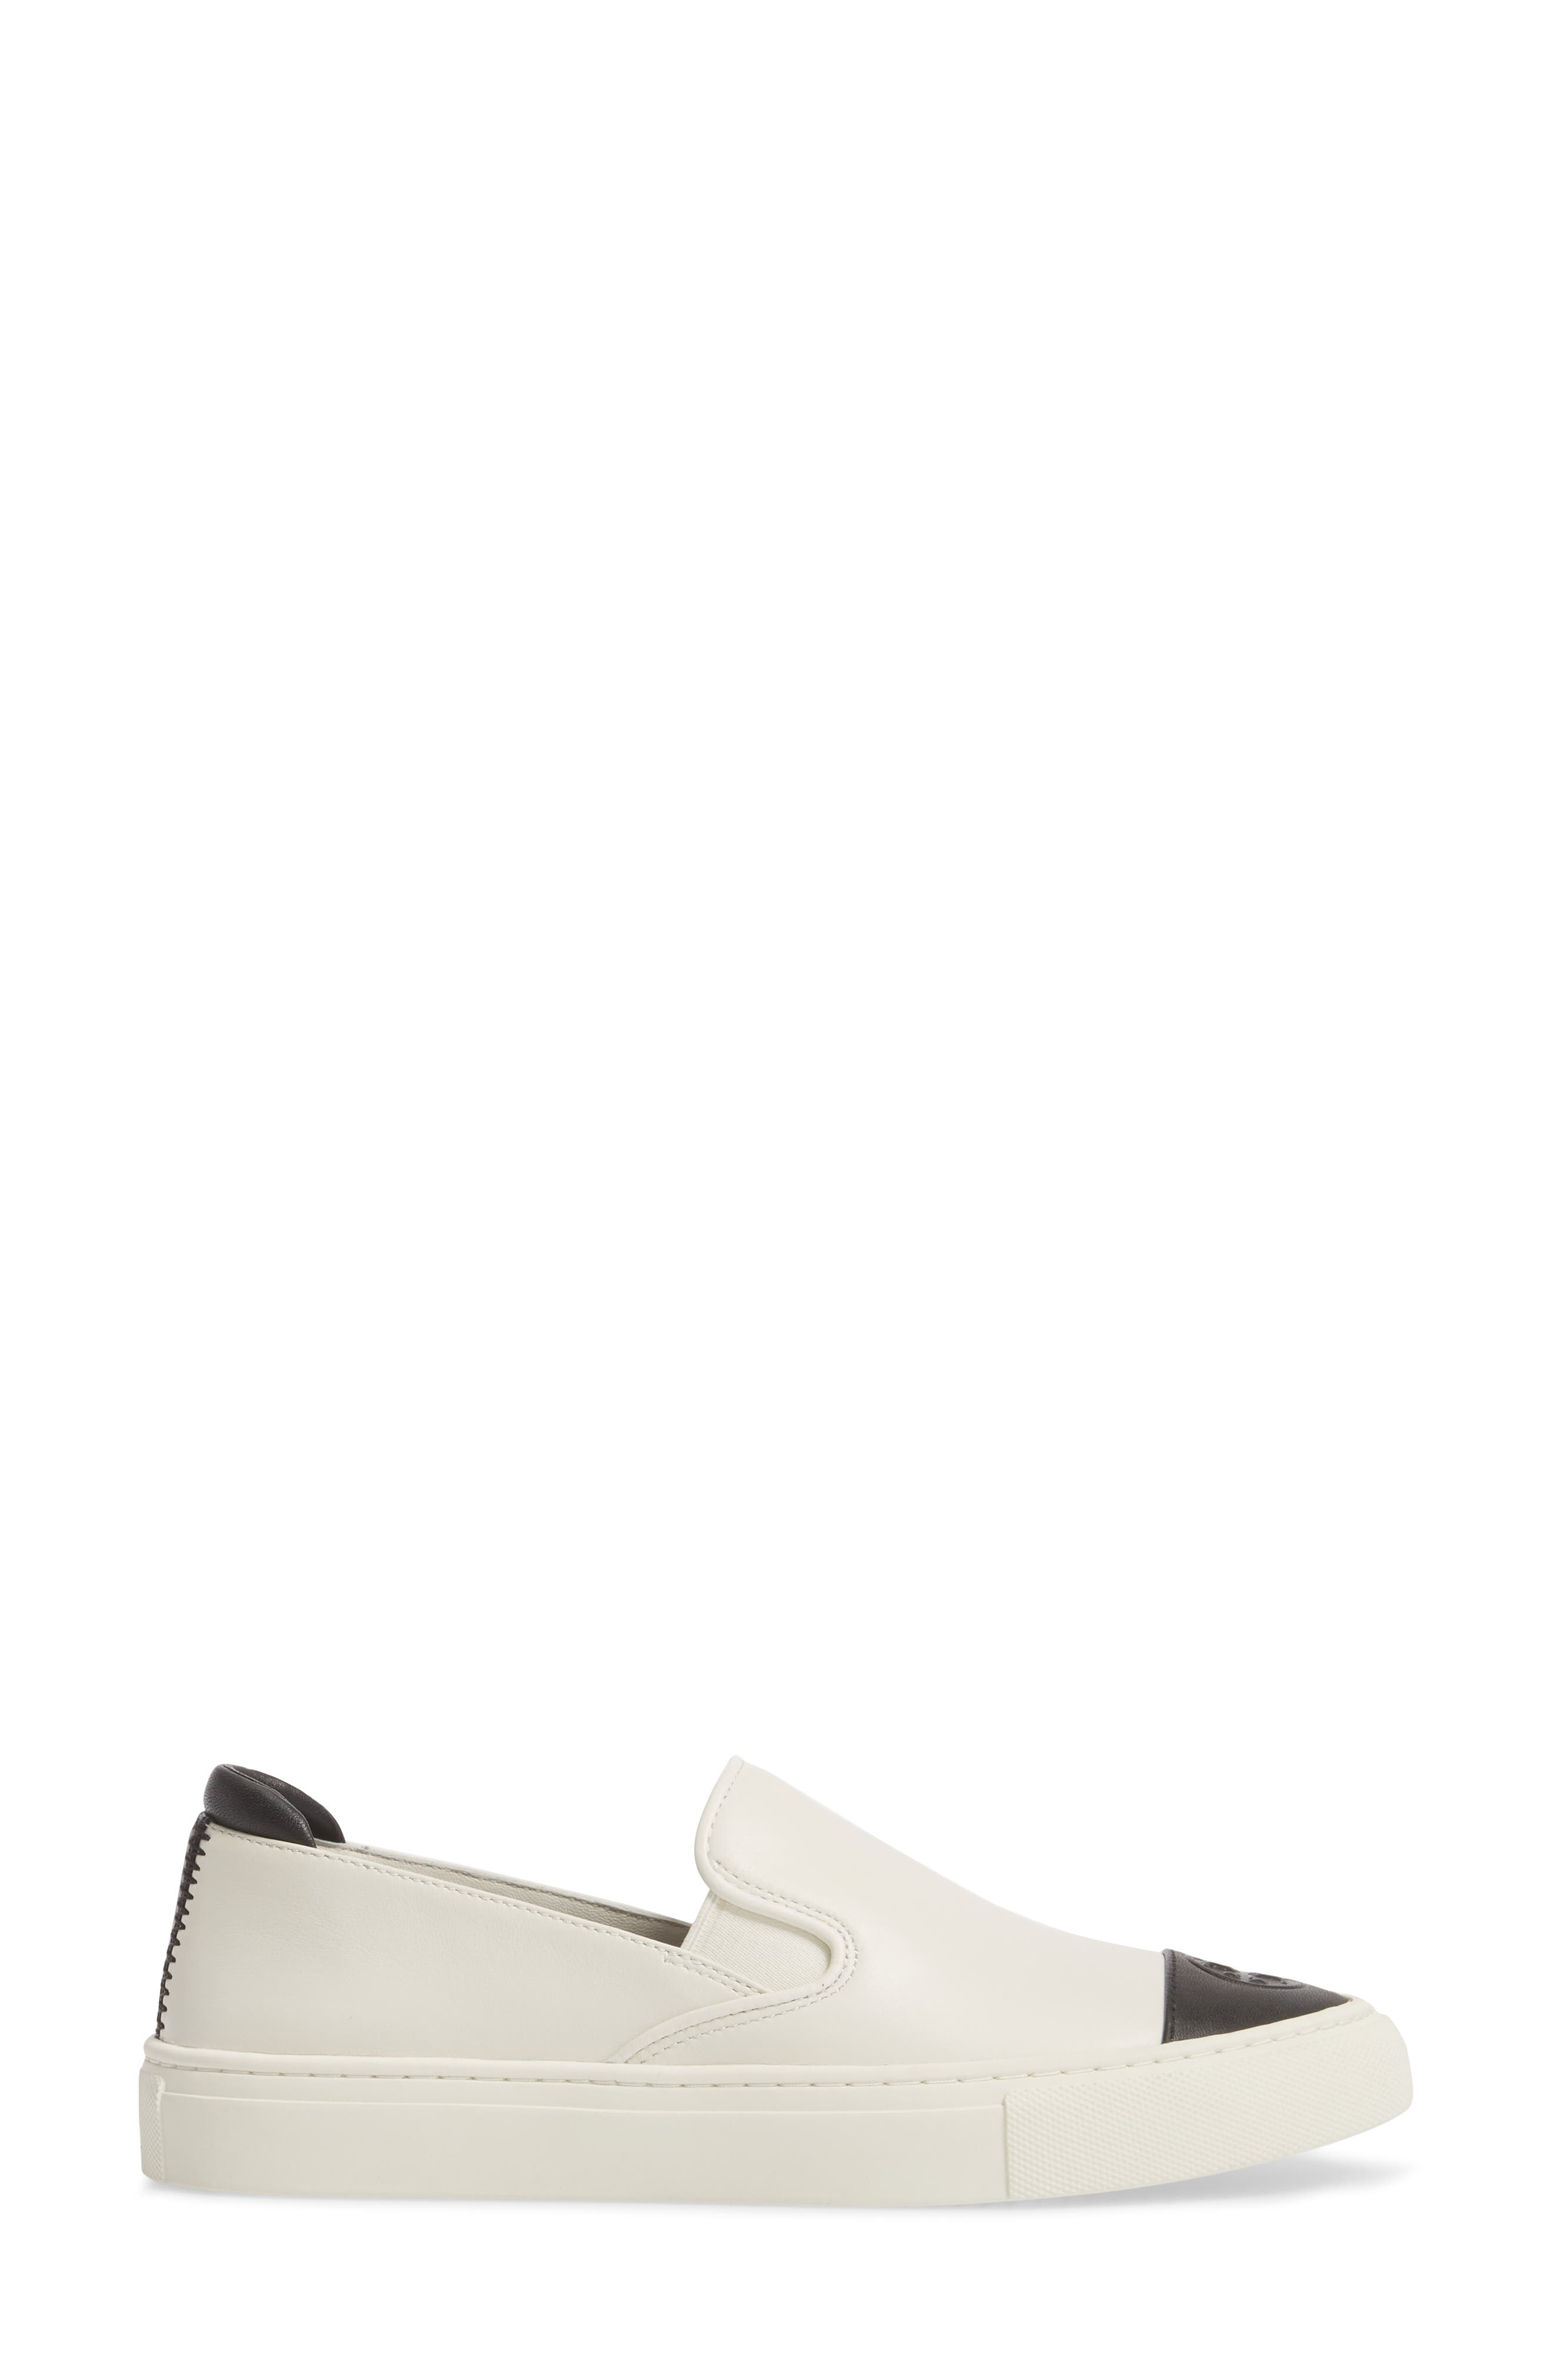 Colorblock Slip-On Sneaker,                             Alternate thumbnail 3, color,                             PERFECT IVORY/ PERFECT BLACK